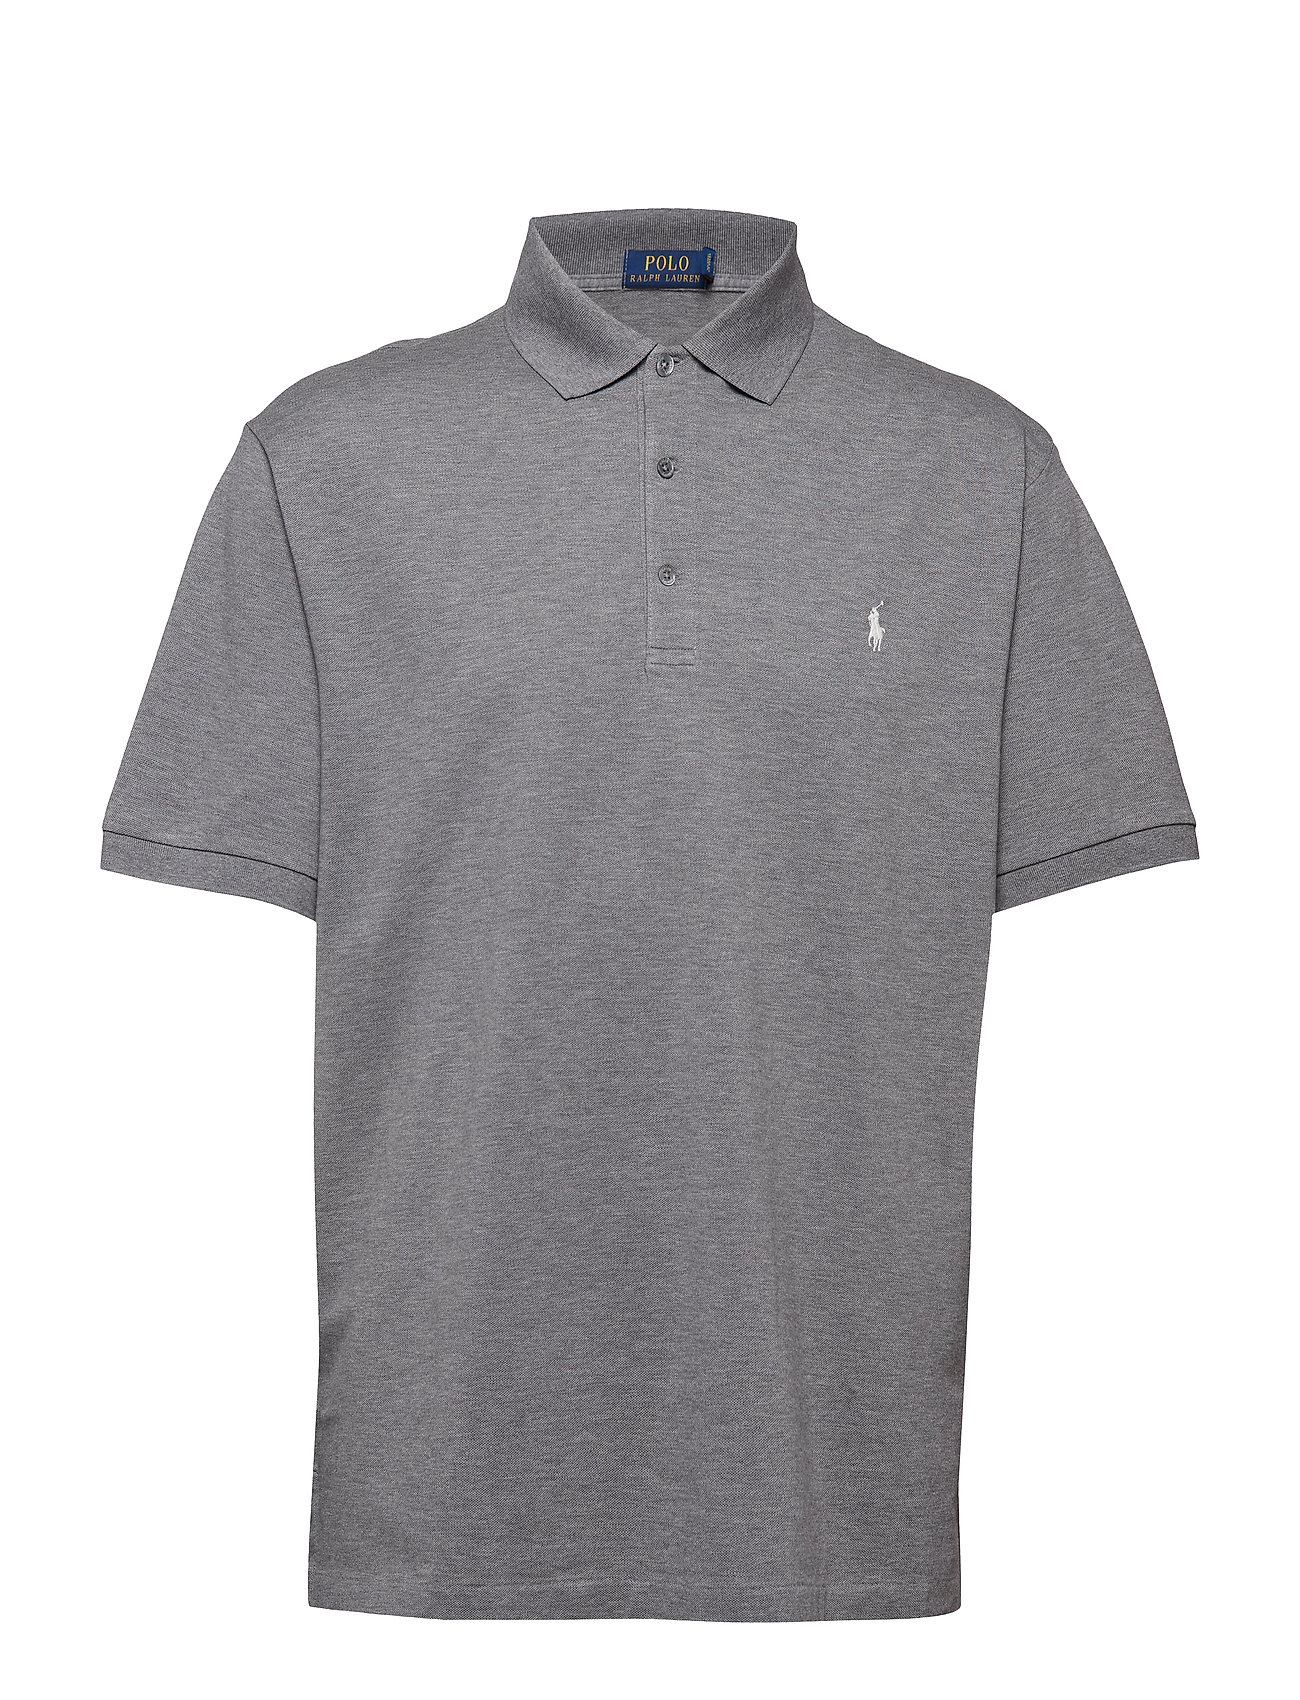 Polo Ralph Lauren Big & Tall Classic Fit Stretch Mesh Polo